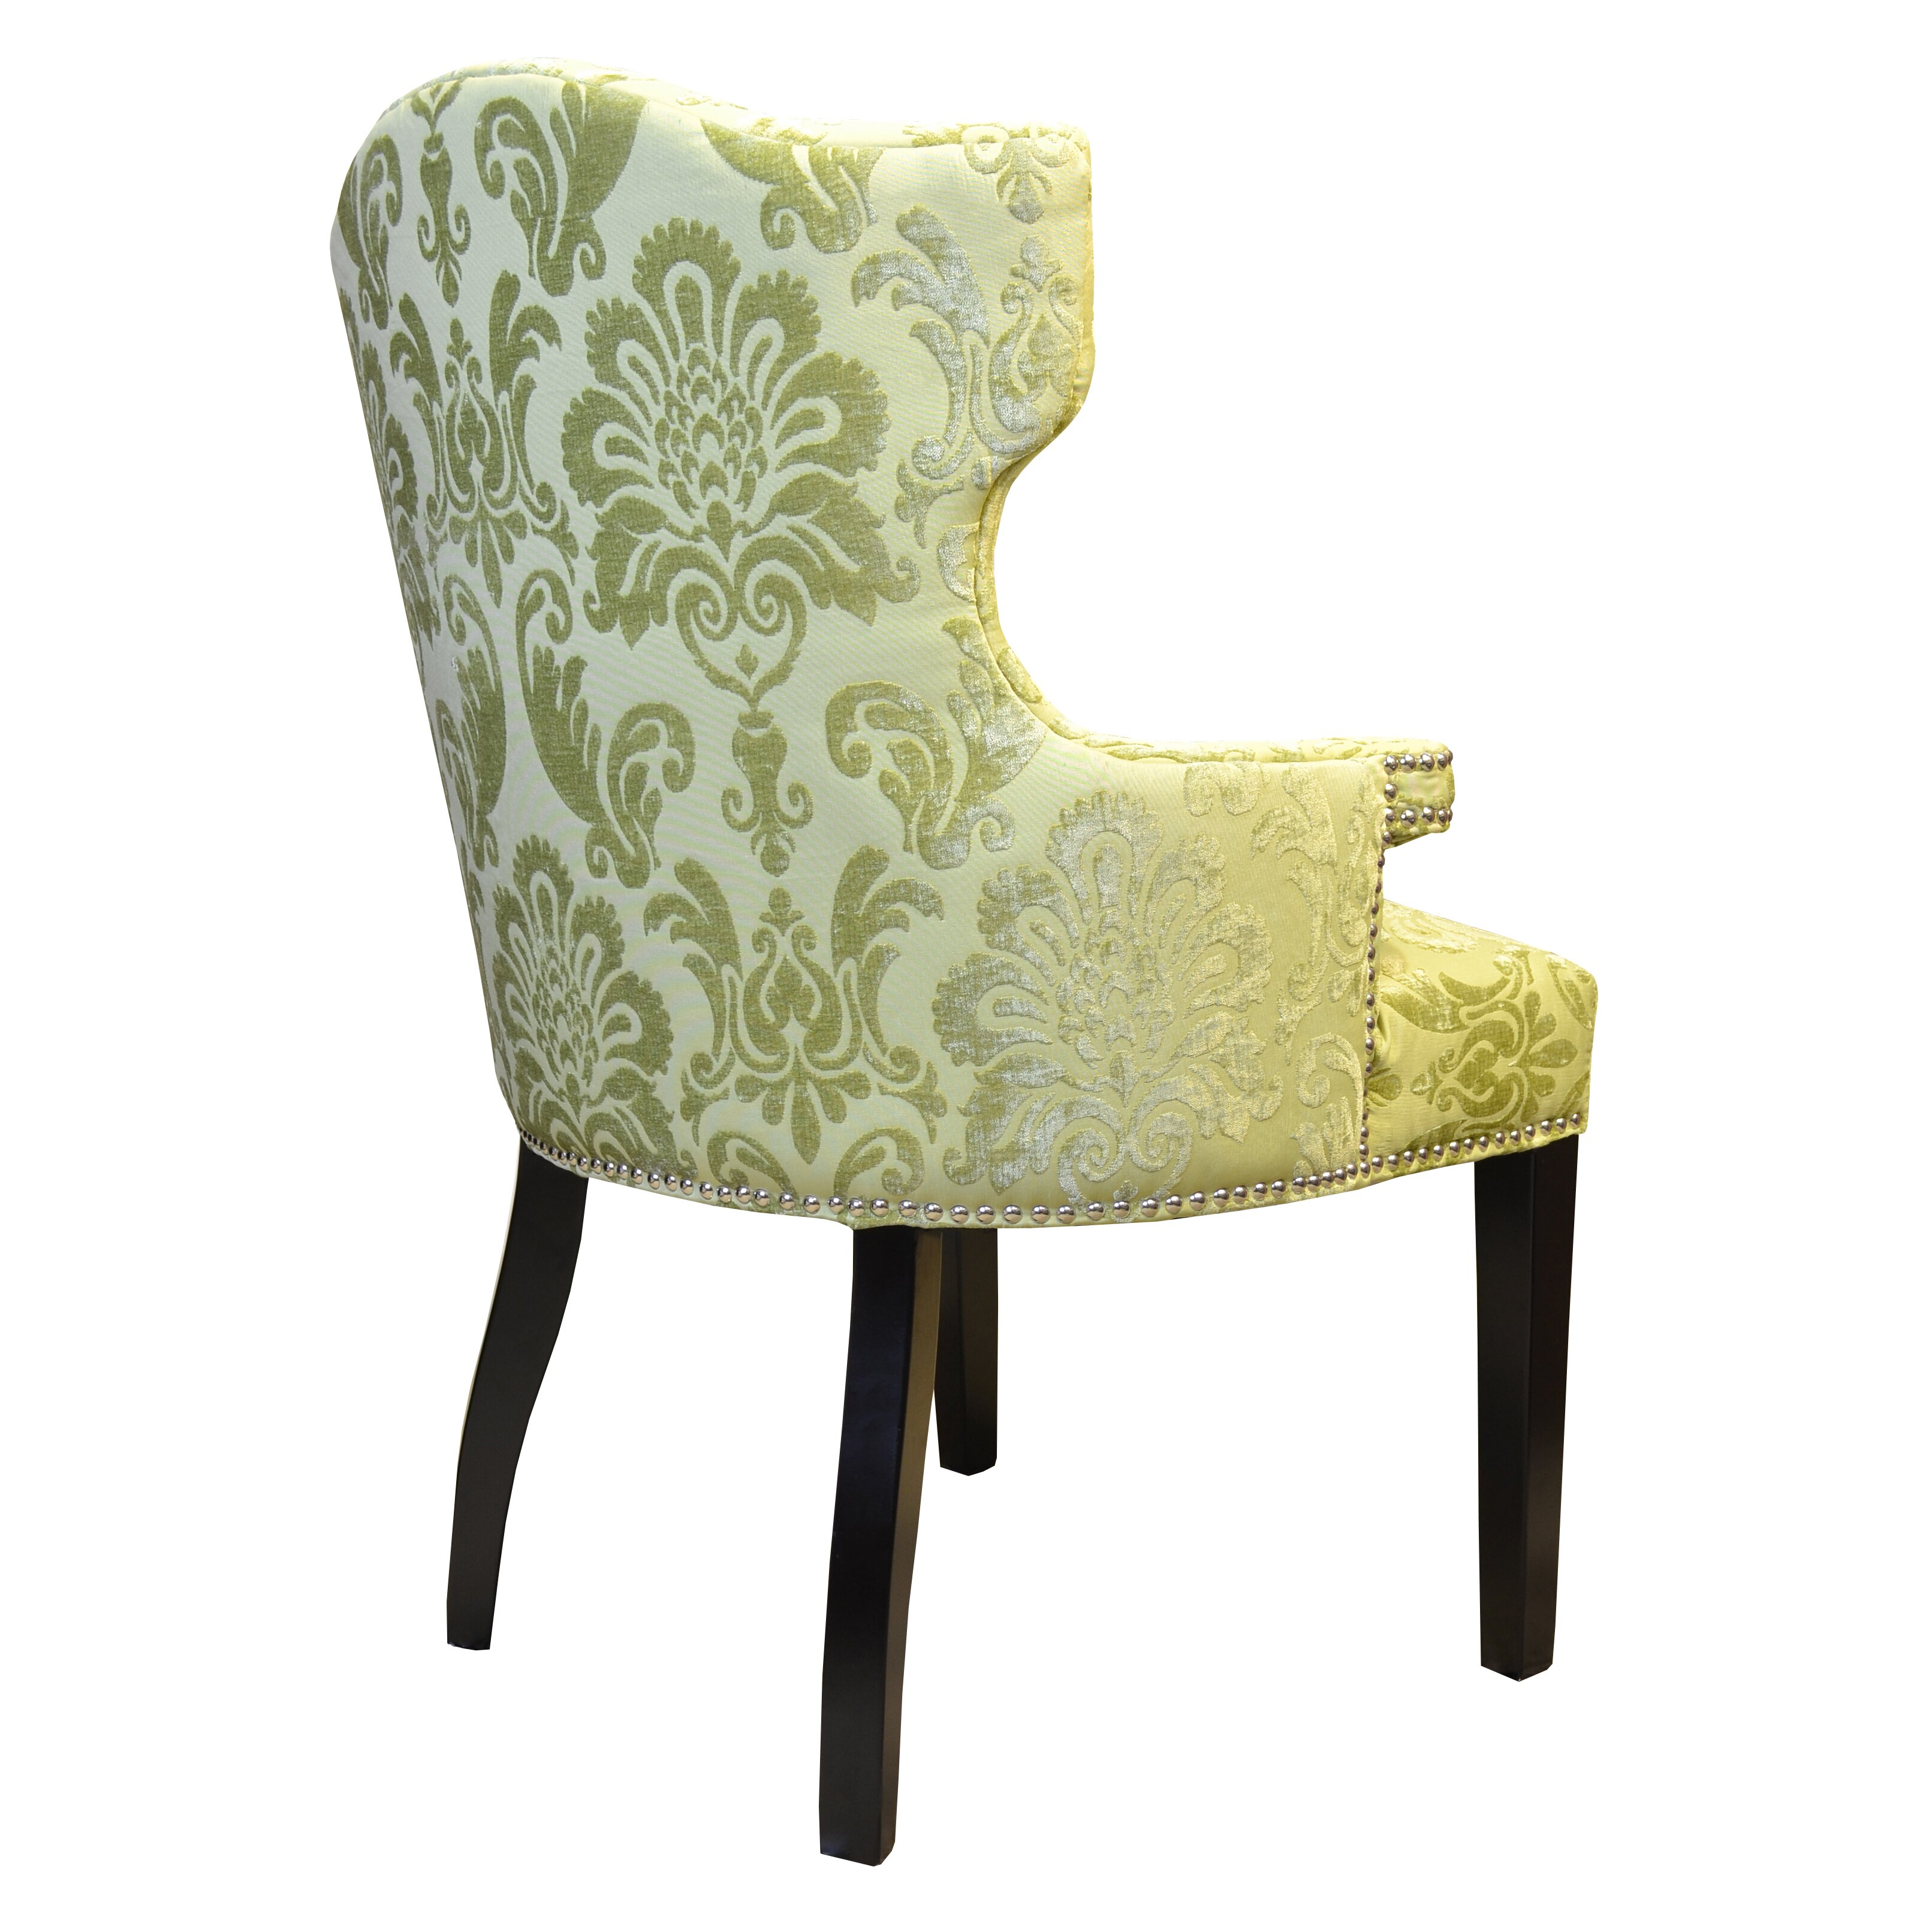 Damask Lounge Chair - Previousnext